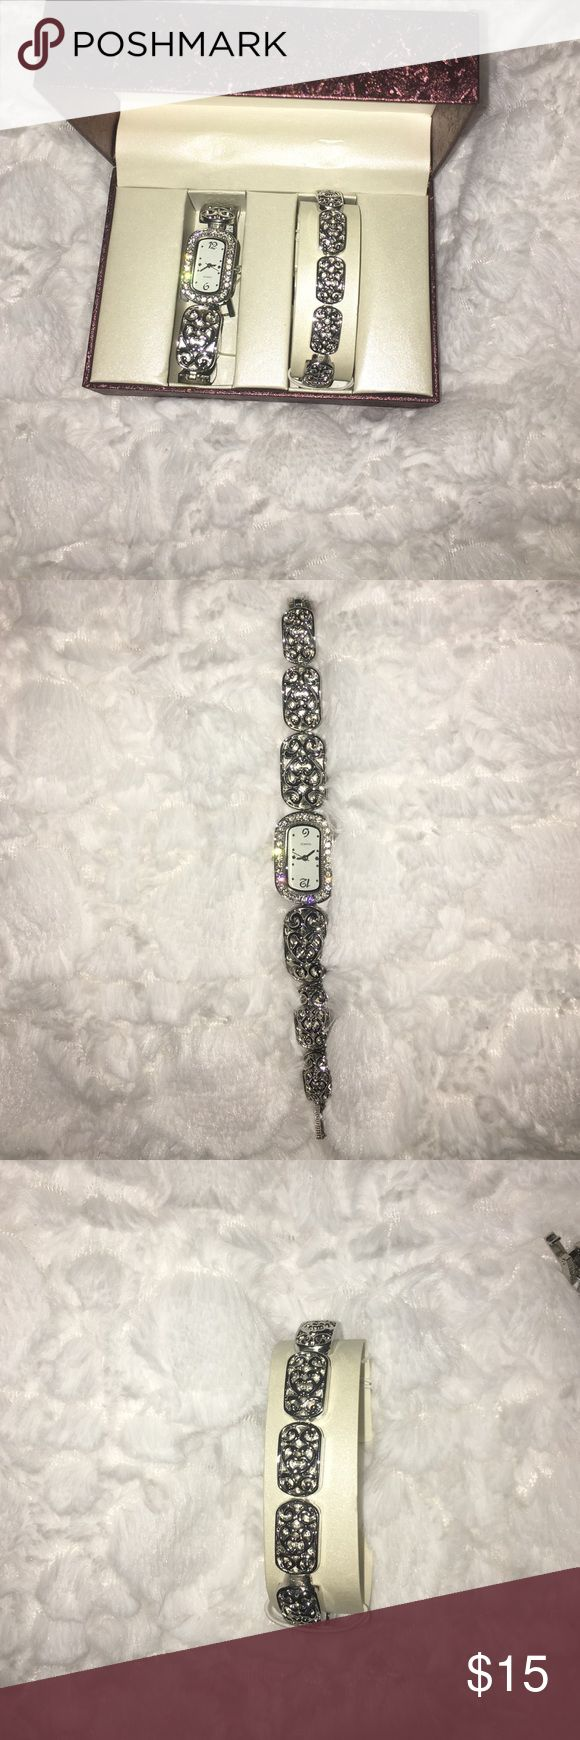 Diamond watch This is a silver rhinestone watch with a bracelet watch was made in China comes with box.   https://www.mercari.com/u/658677413/  Free cosmetic sample gift with the purchase of $20 and over Jewelry Bracelets